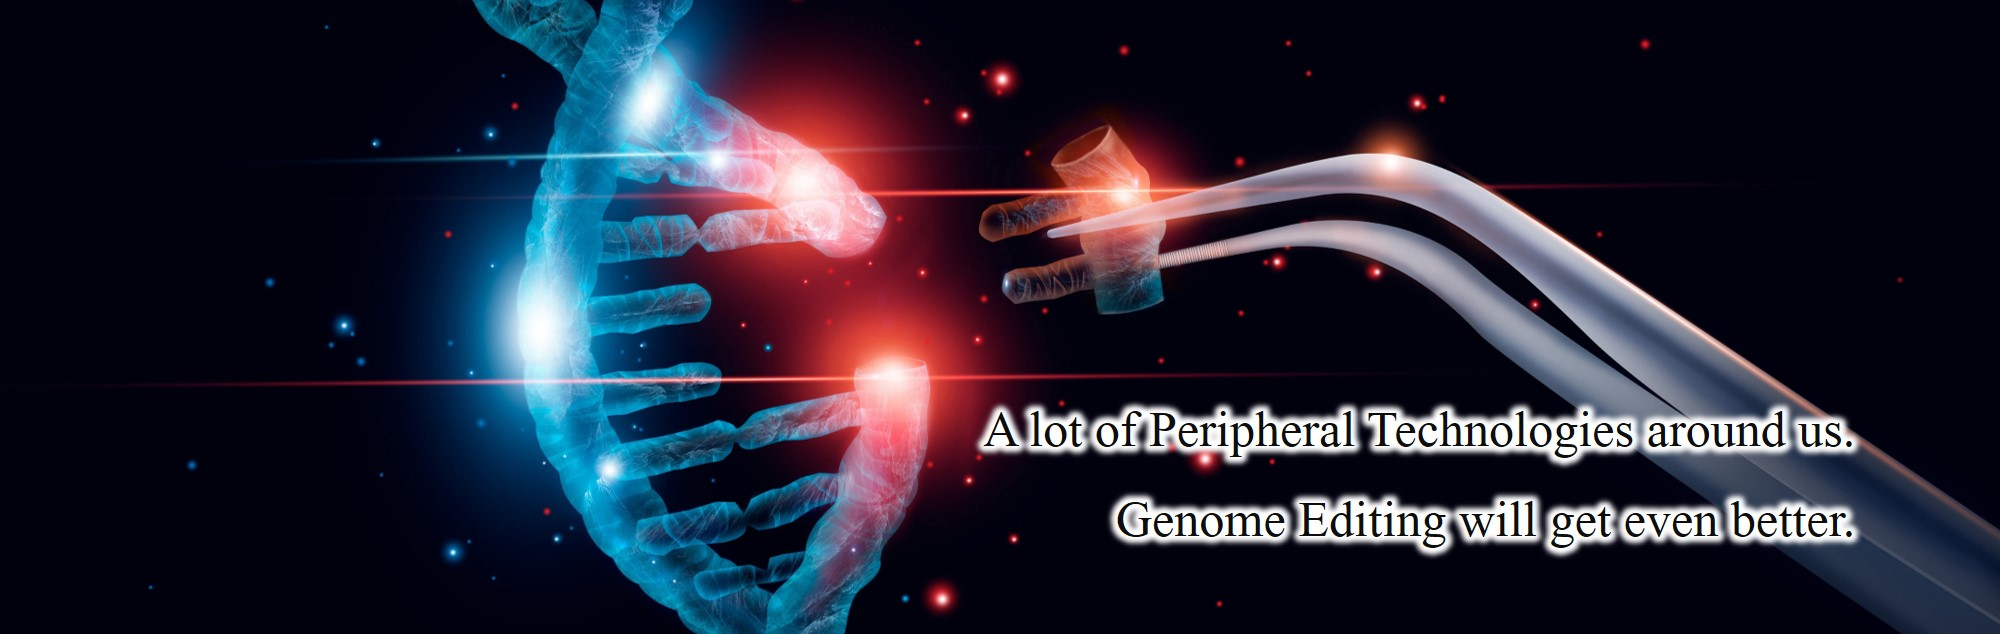 A lot of Peripheral Technologies around us. Genome Editing will get even better.